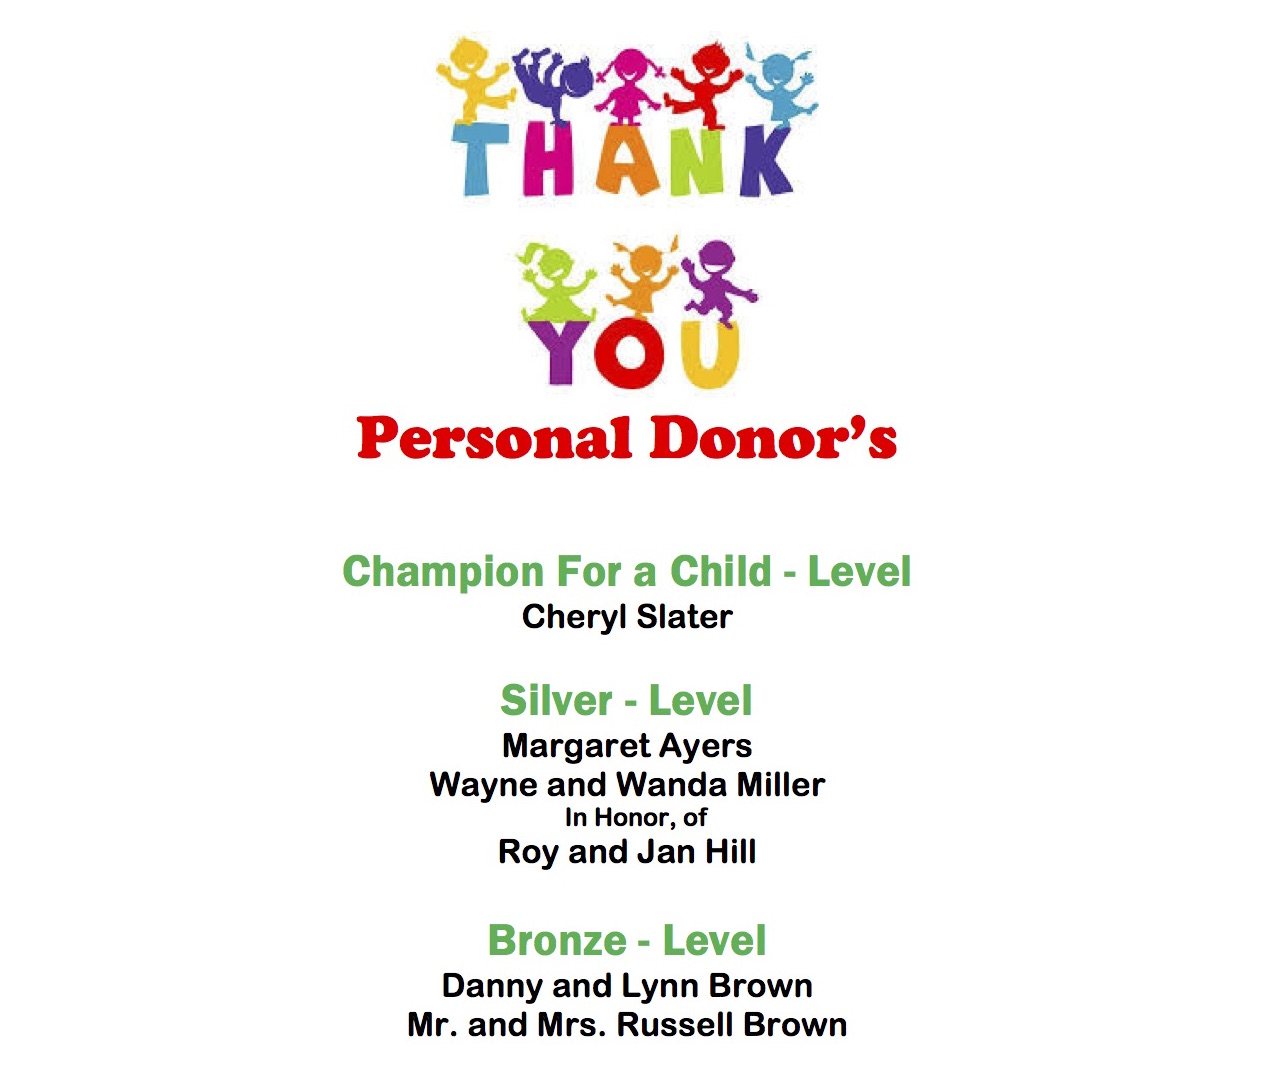 Personal Donor's Thank You 7-10-19 copy.jpg